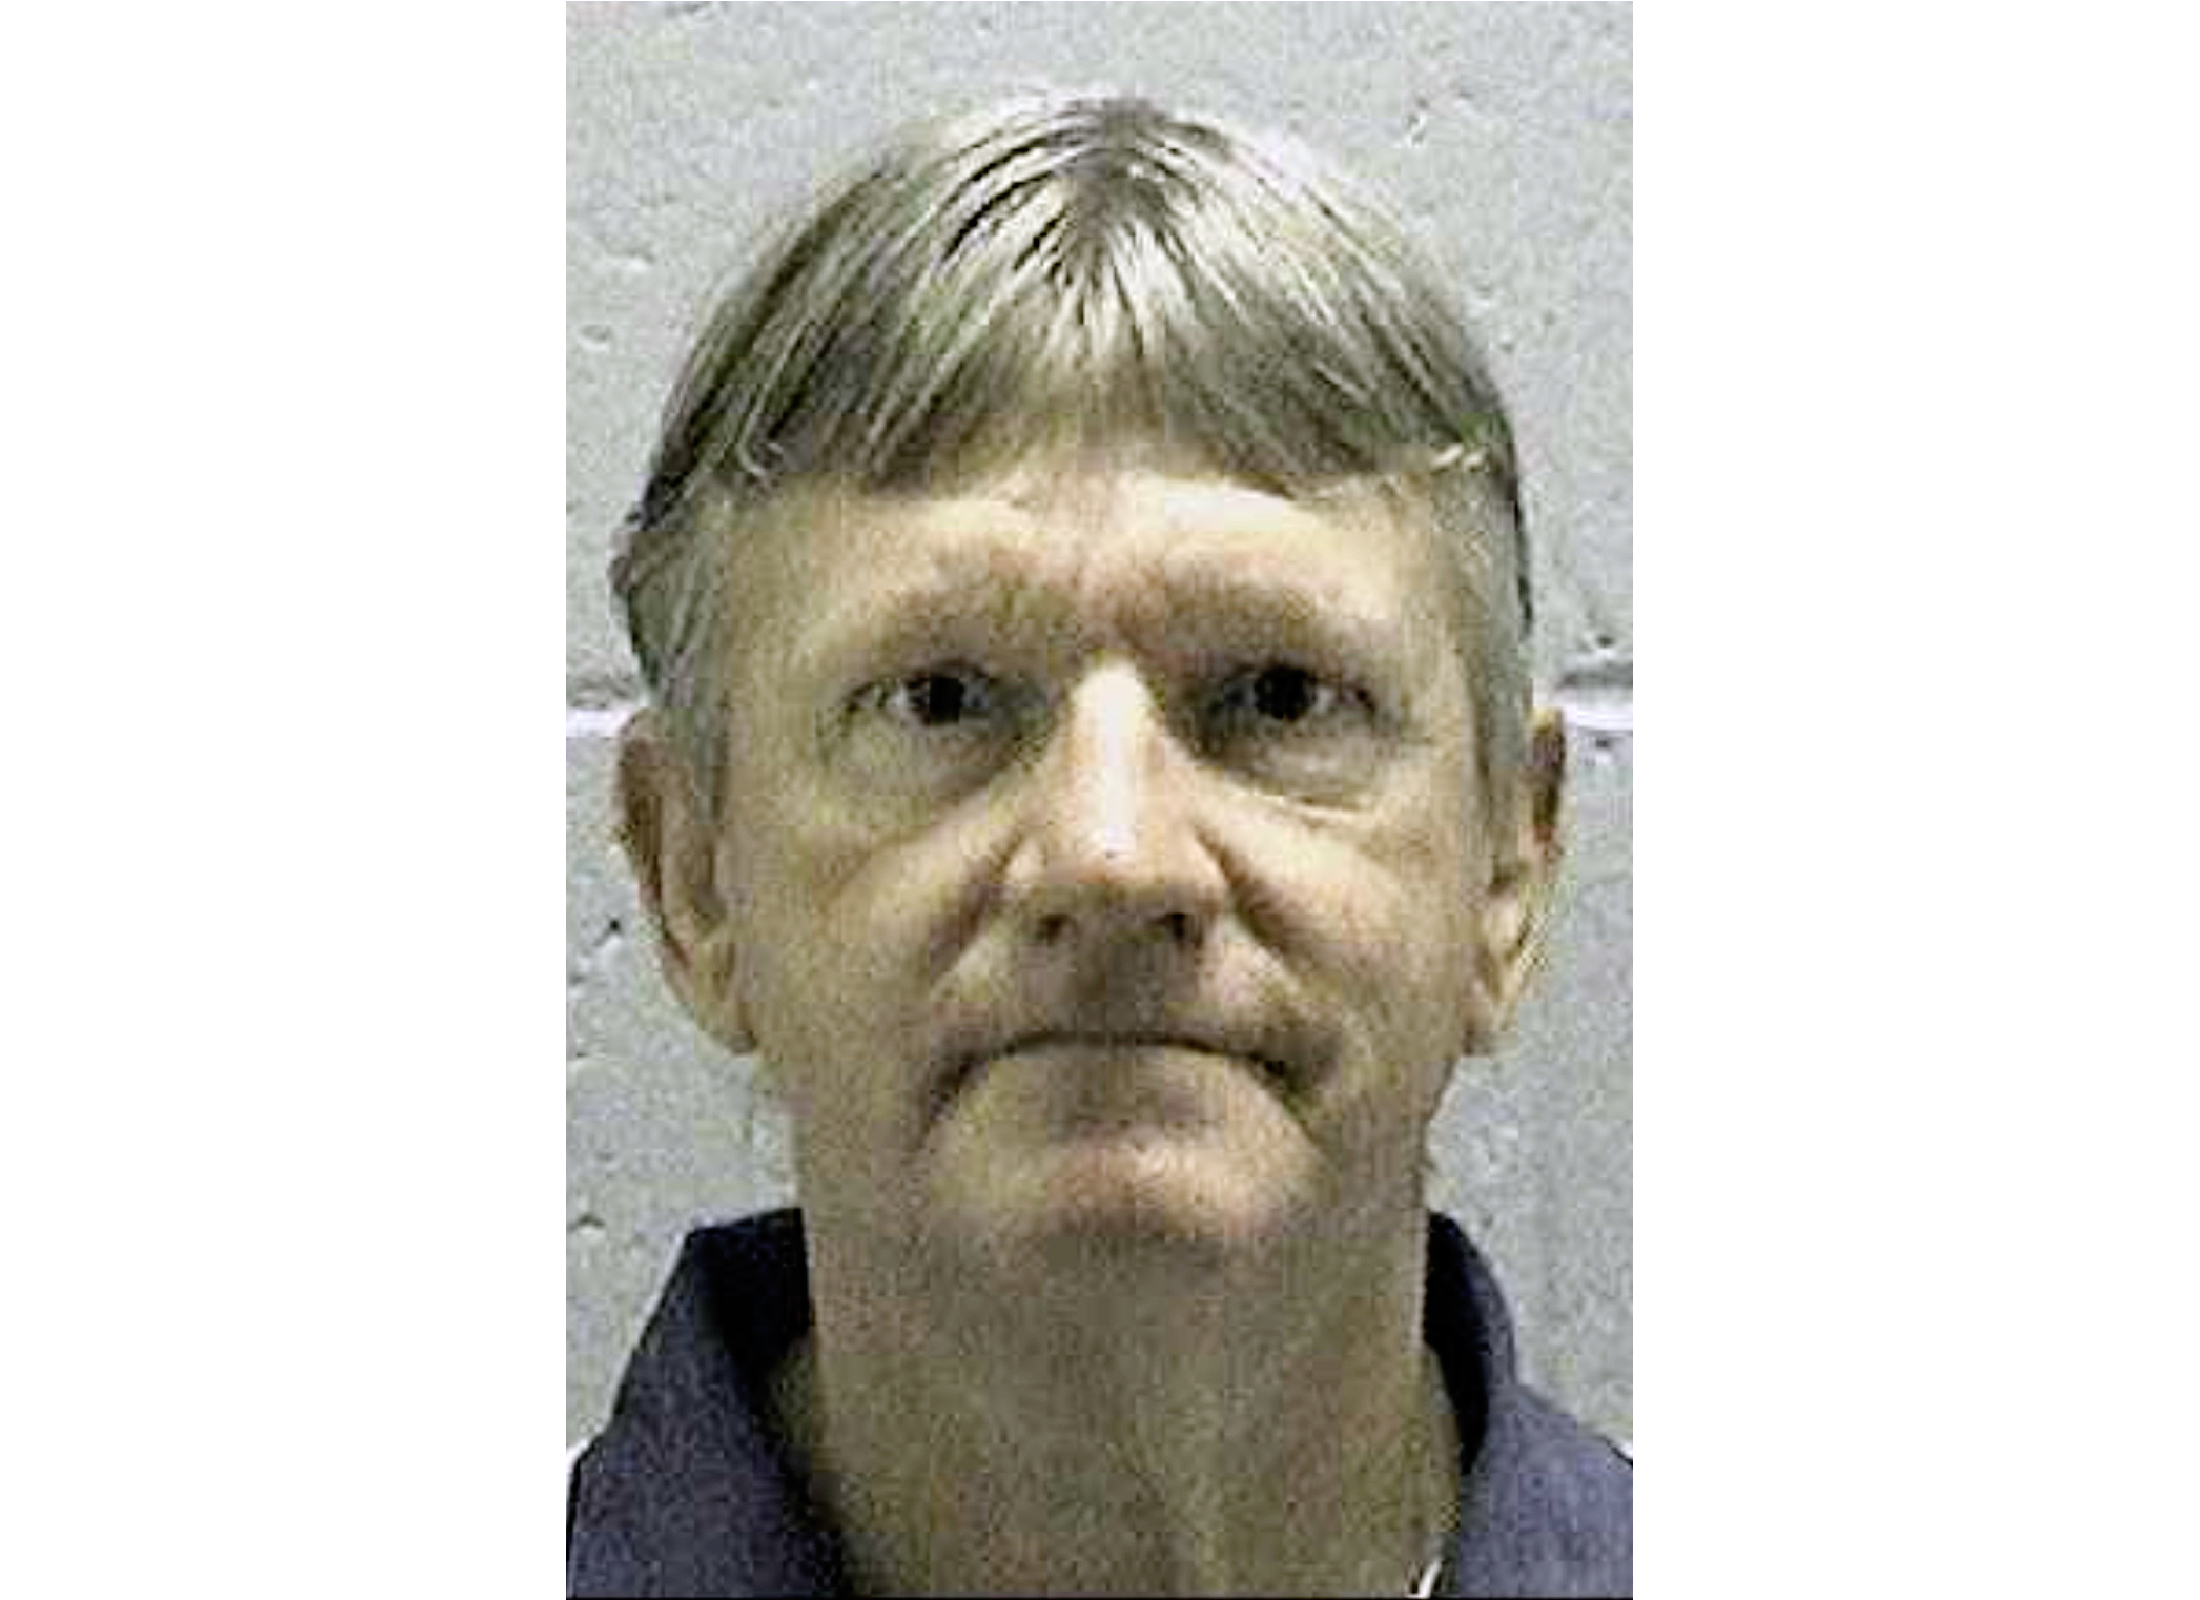 Georgia man put to death for the 1997 killings of 2 people